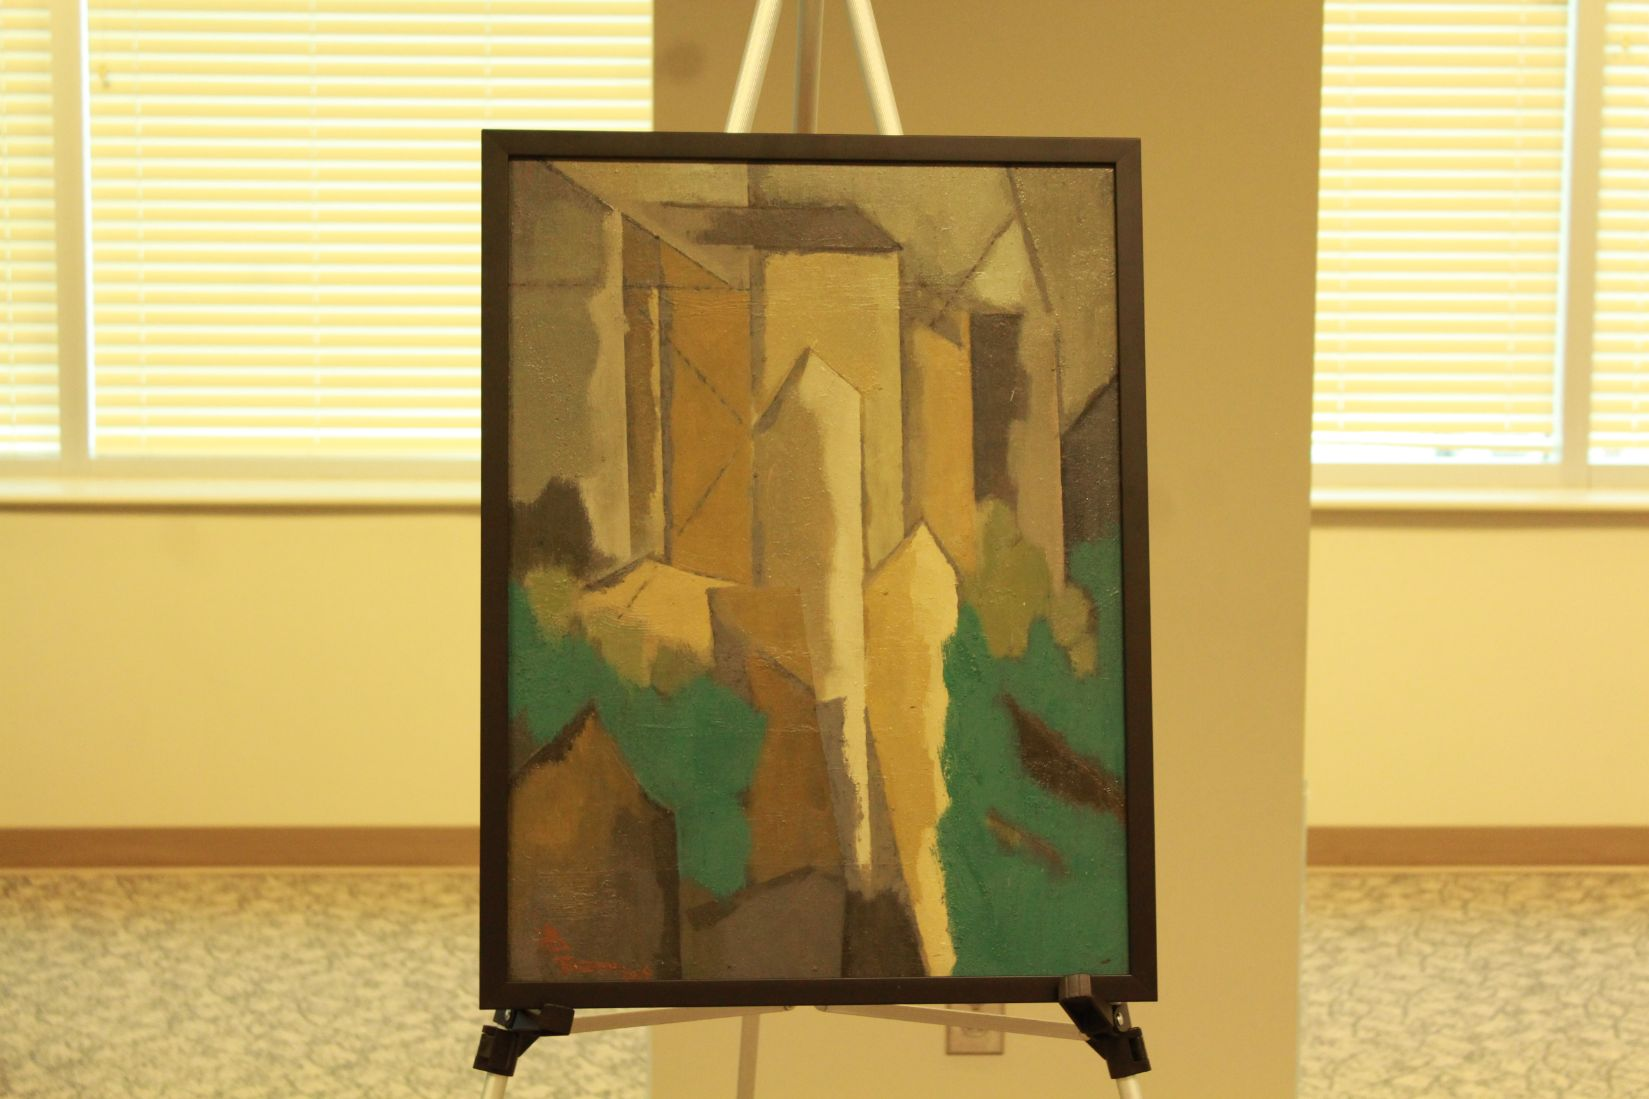 A painting hangs on an easel, angular neutral designs meeting bright teal clouds.